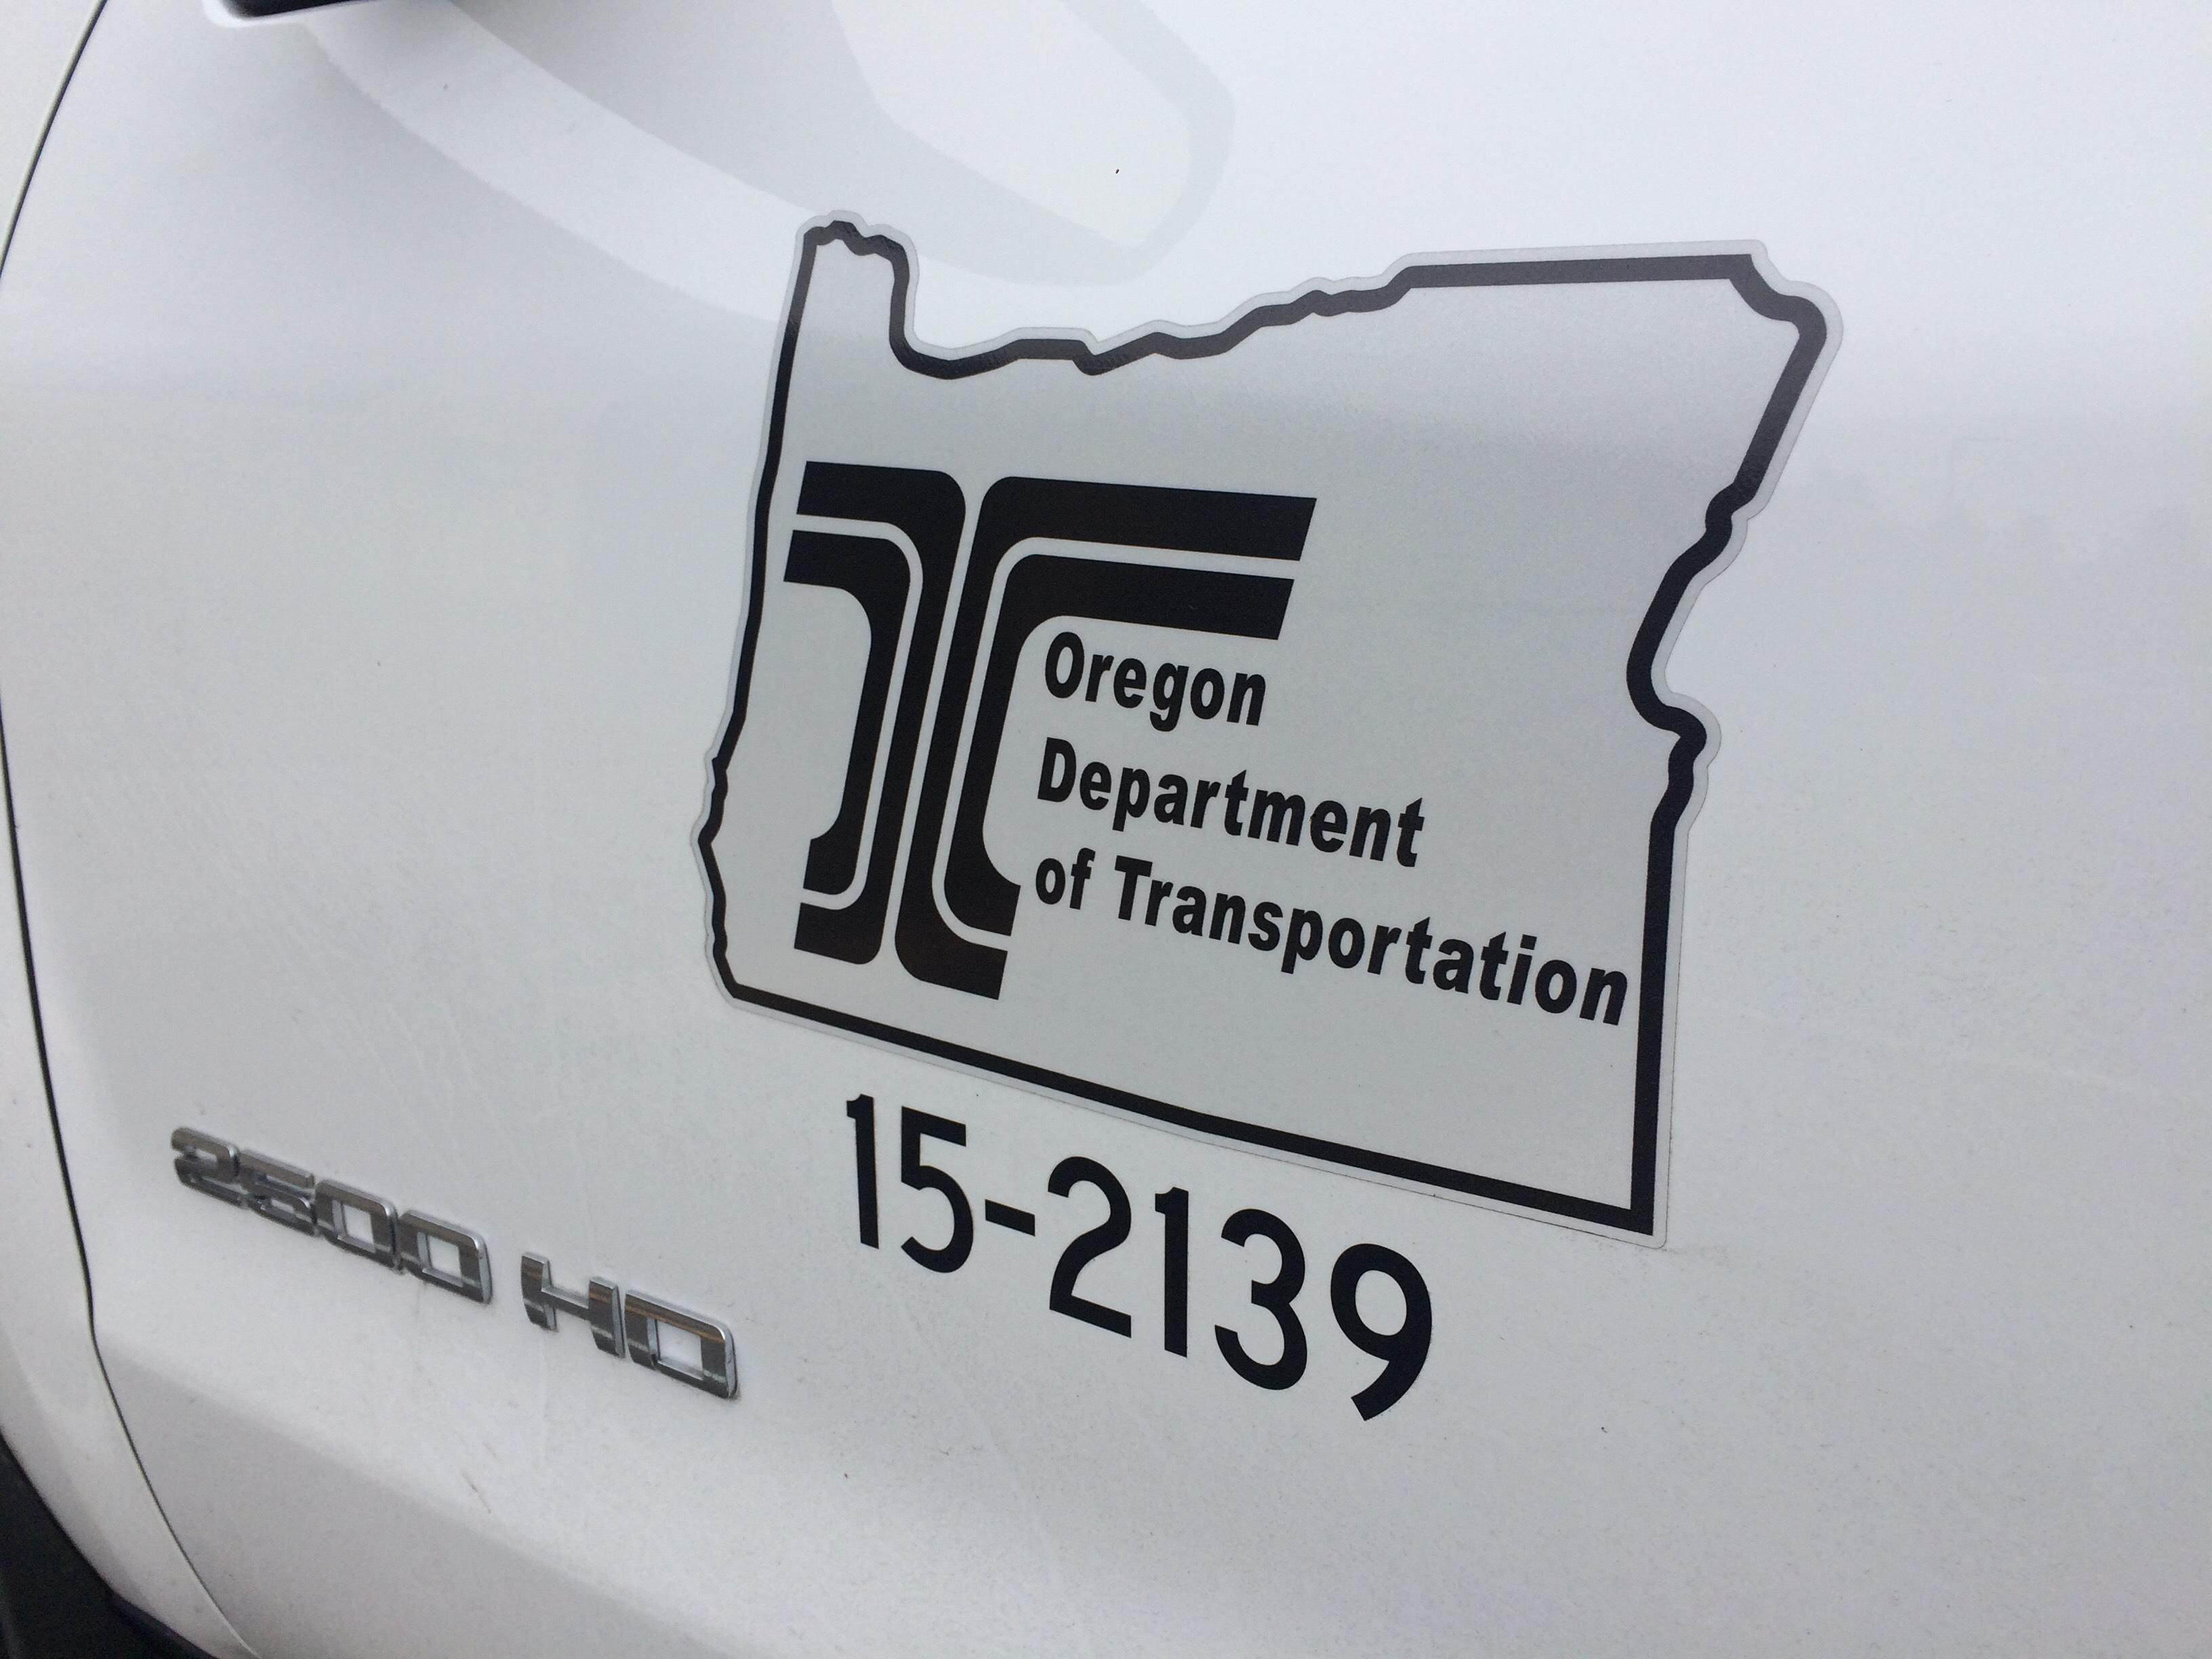 ODOT keeping an eye on winter travel conditions in Oregon